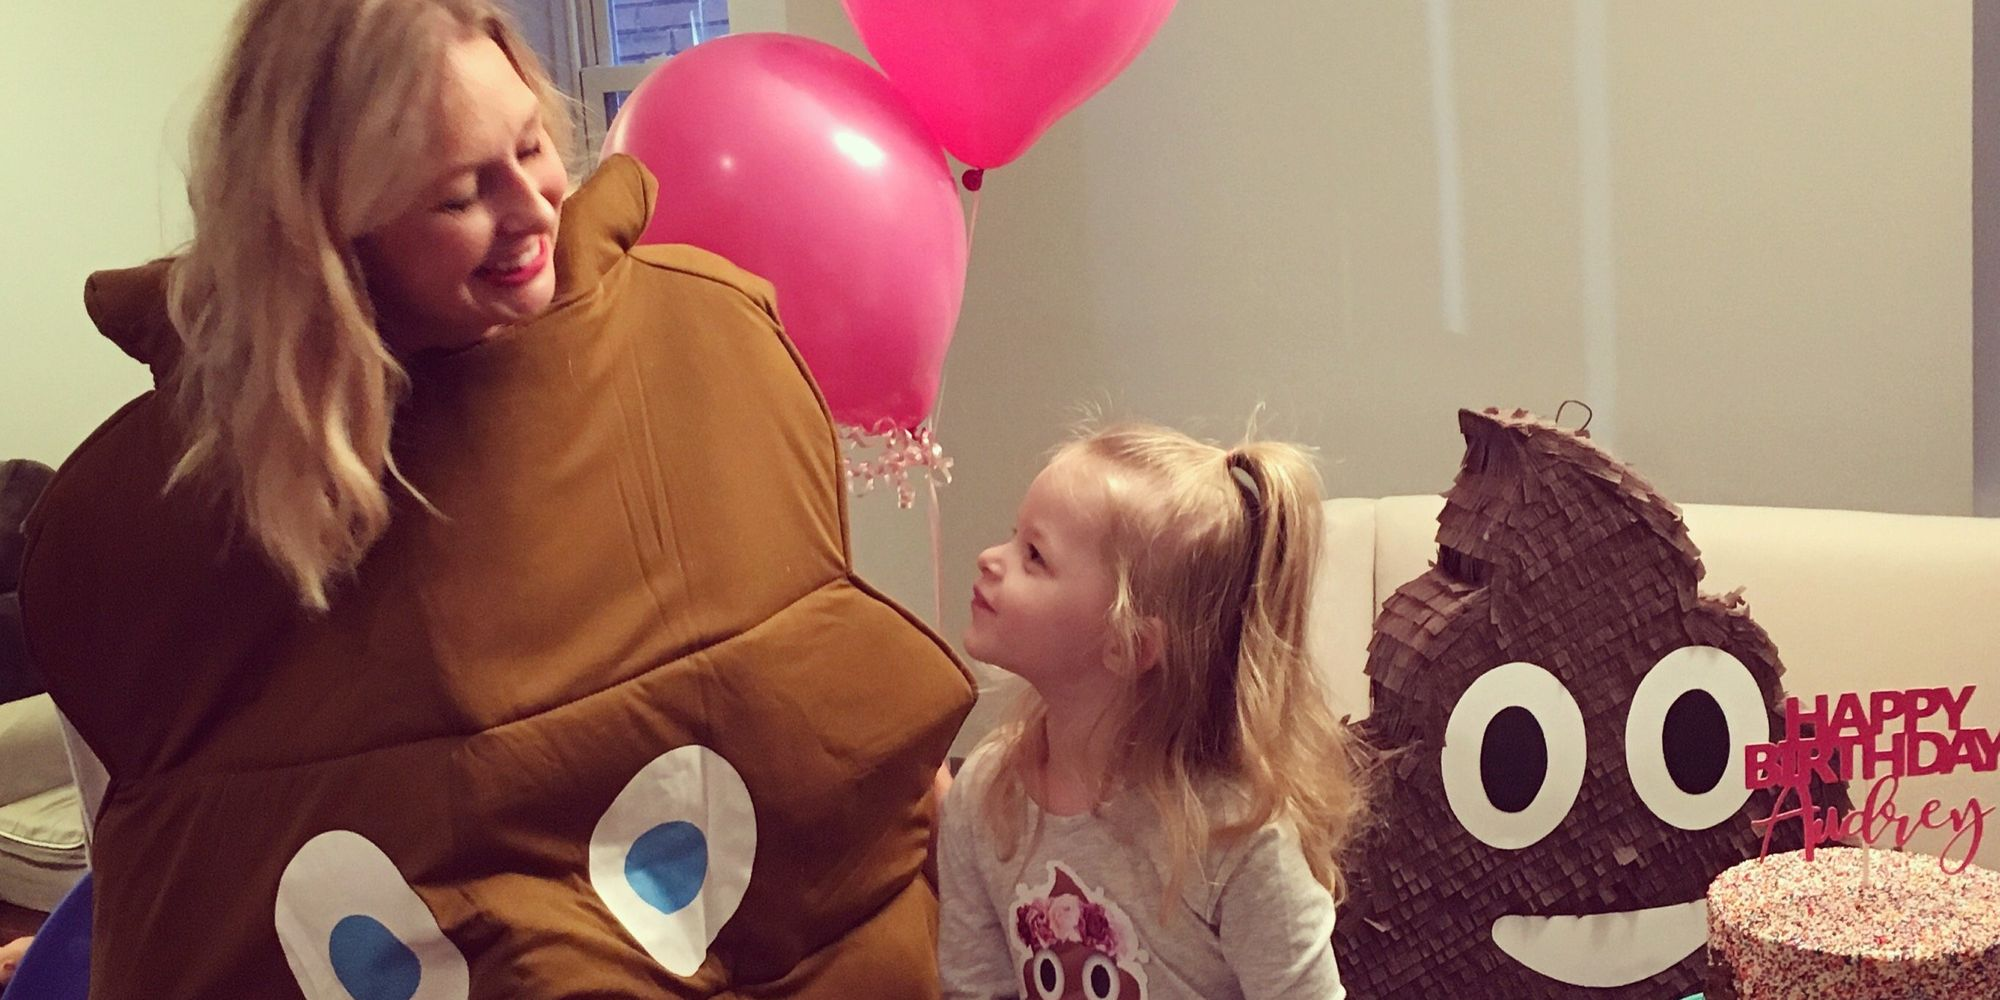 This Little Girl Wanted A Poop-Themed Birthday Party, So Her Parents Threw..